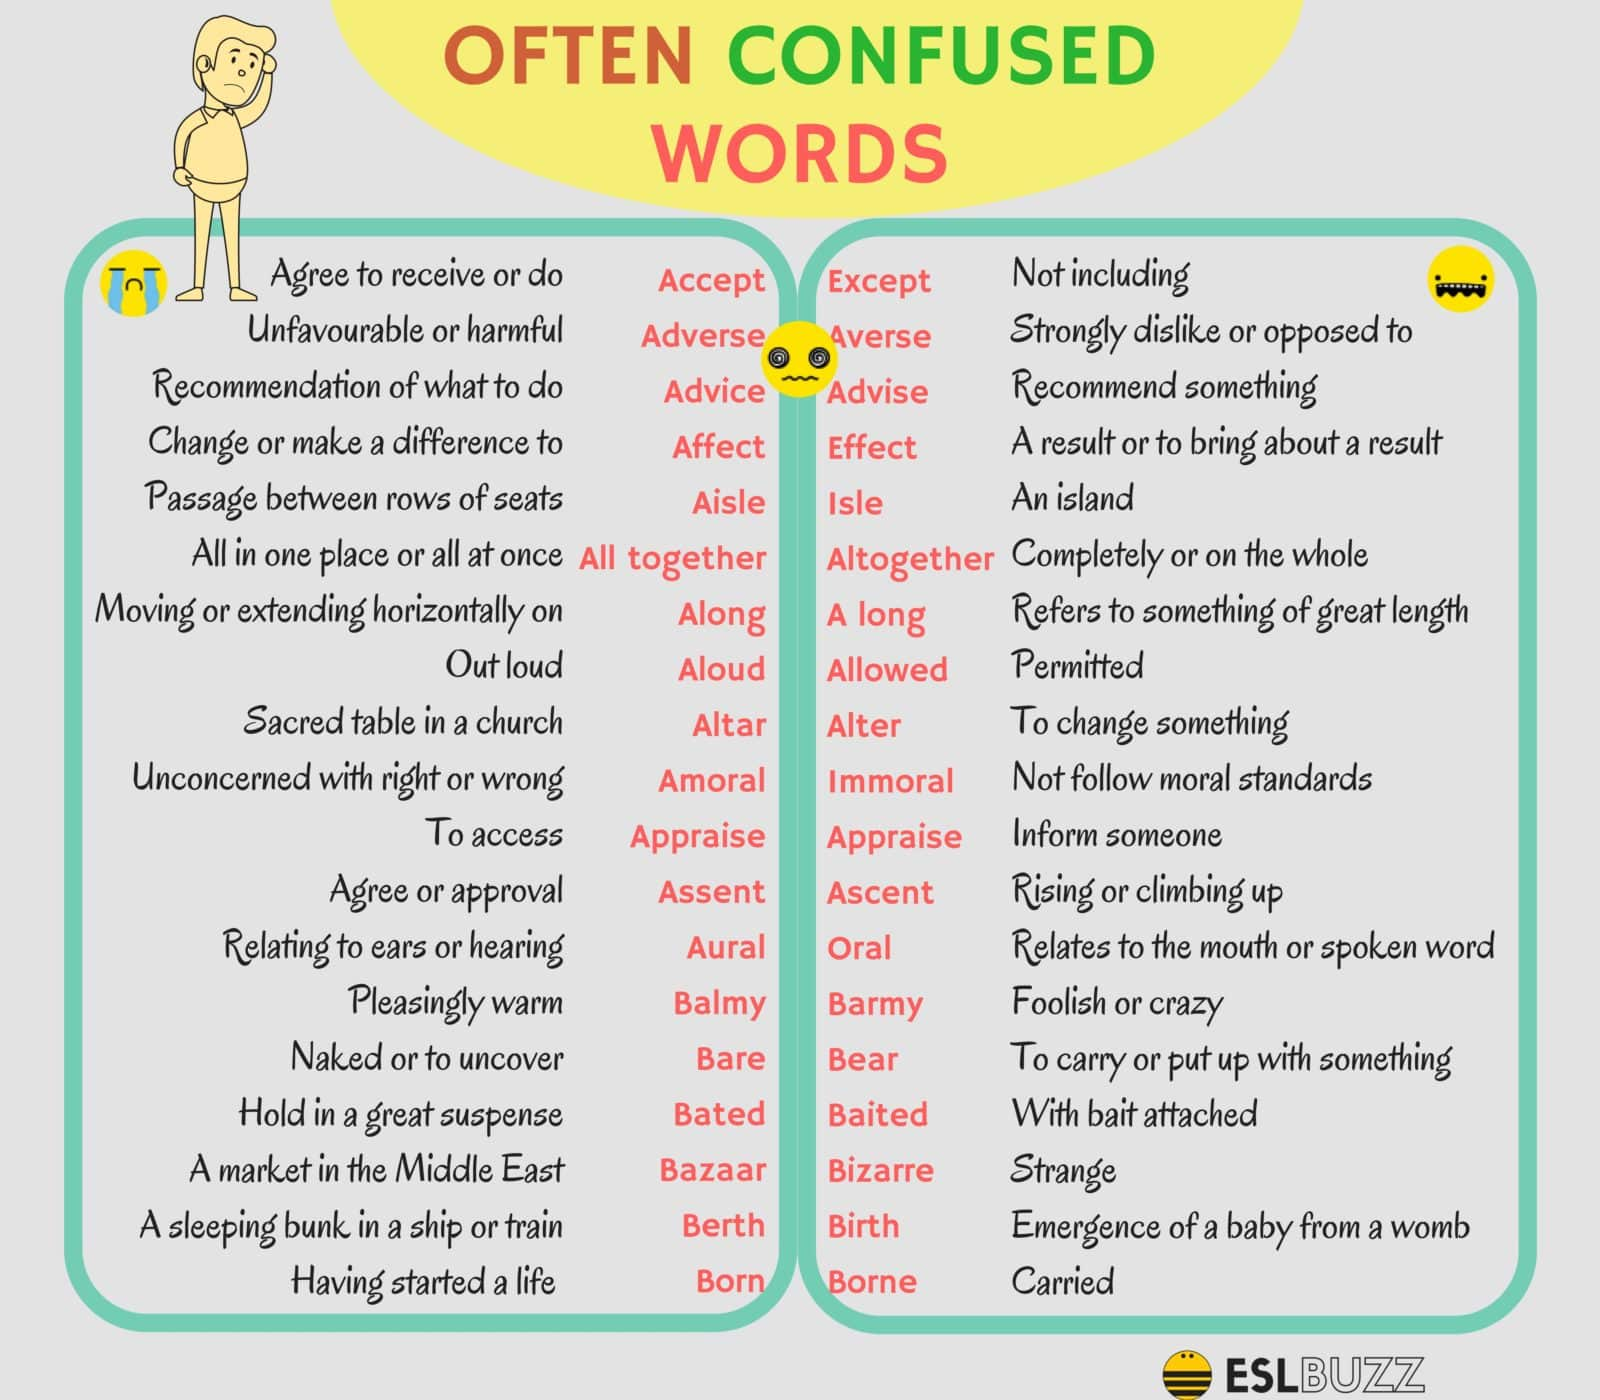 Often Confused Words